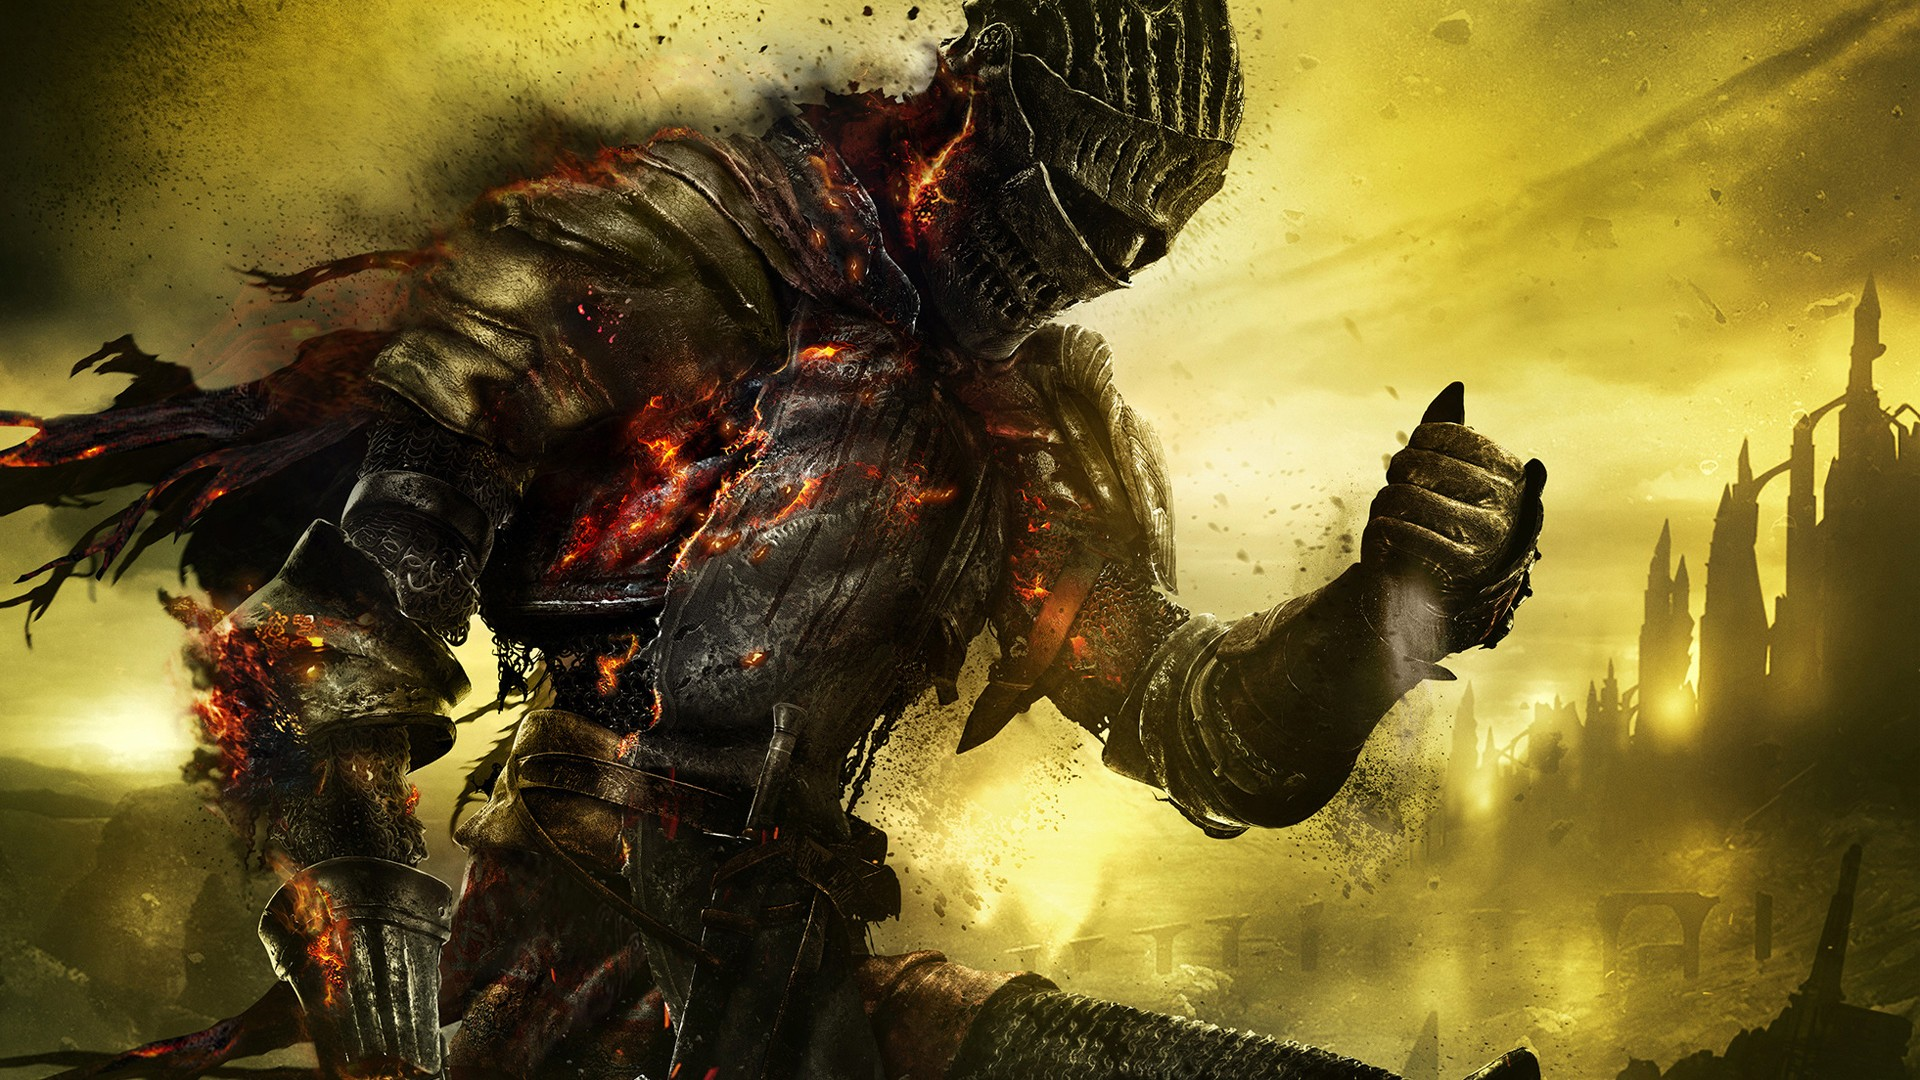 Wallpaper Dark Souls 3 01 sur PS4 Xbox One WiiU PS3 PS Vita 3DS 1920x1080